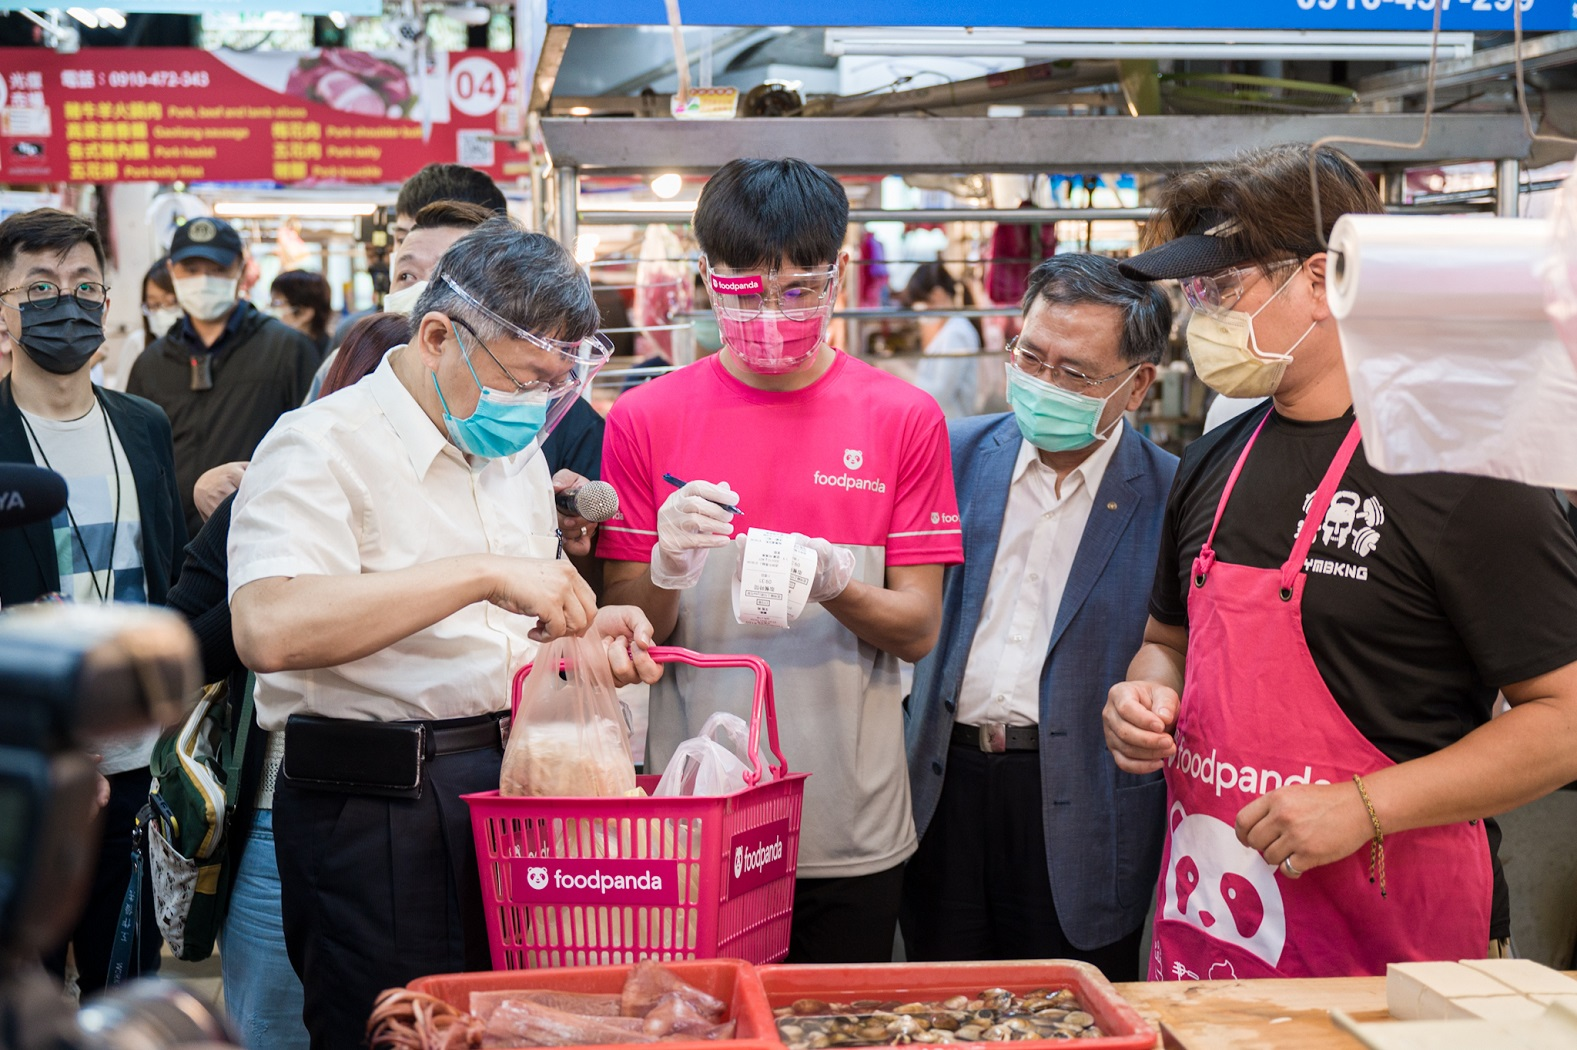 PRESS RELEASE: 30,000 new retailers growth in SMEs brought by foodpanda